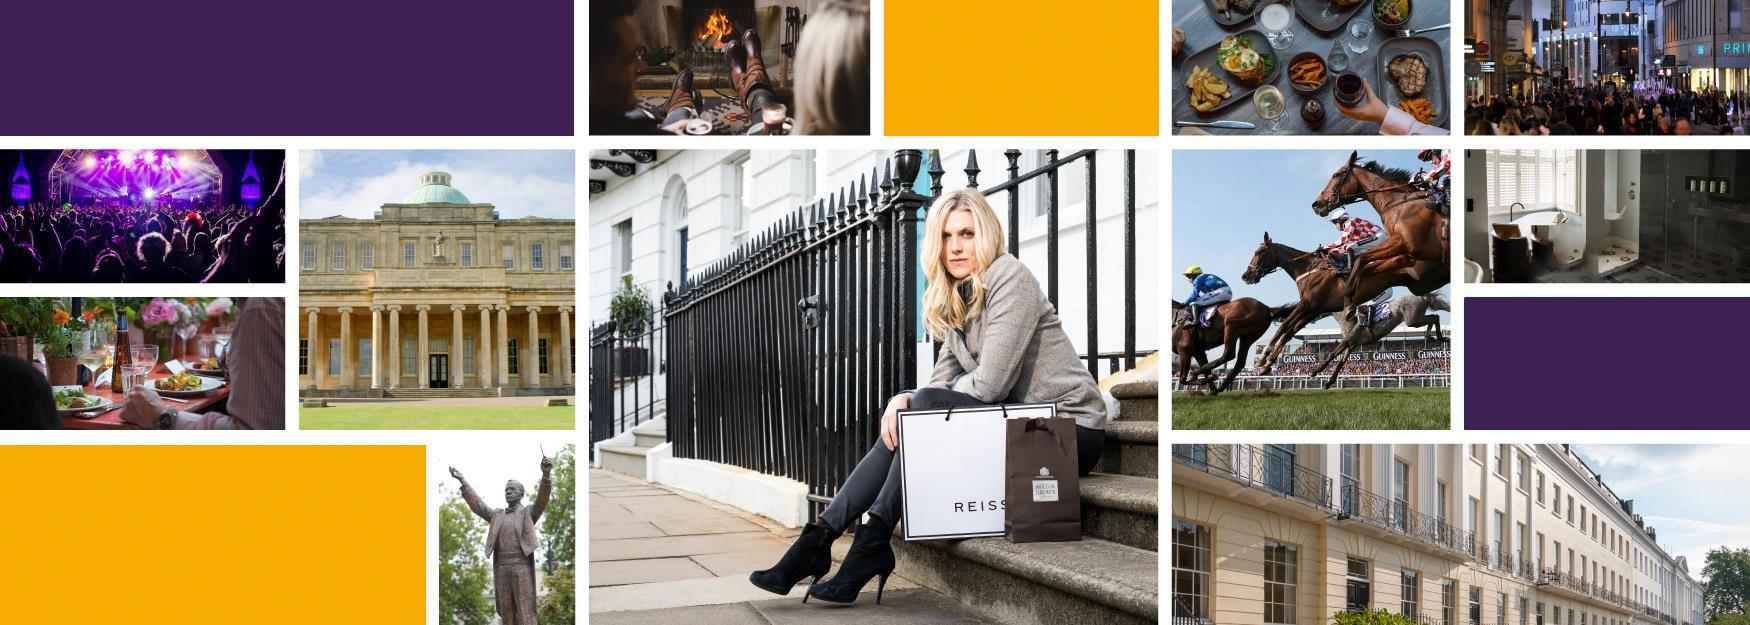 Collage of images of Cheltenham including eating out, shopping and regency architecture.